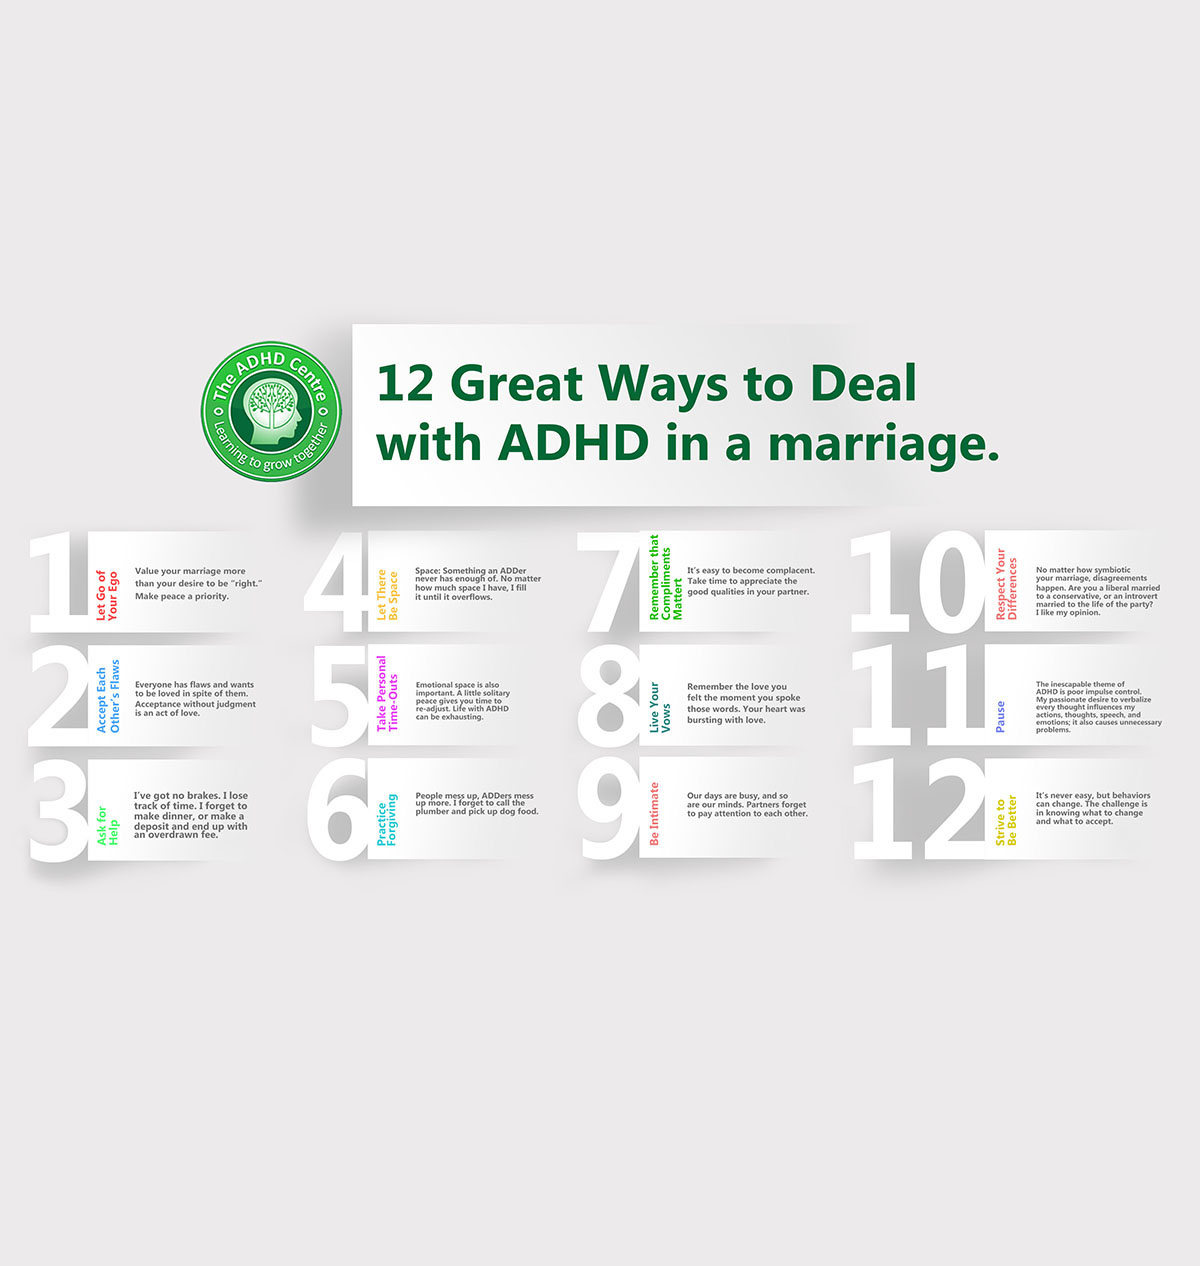 12 Great Ways to Deal with ADHD in a Marriage